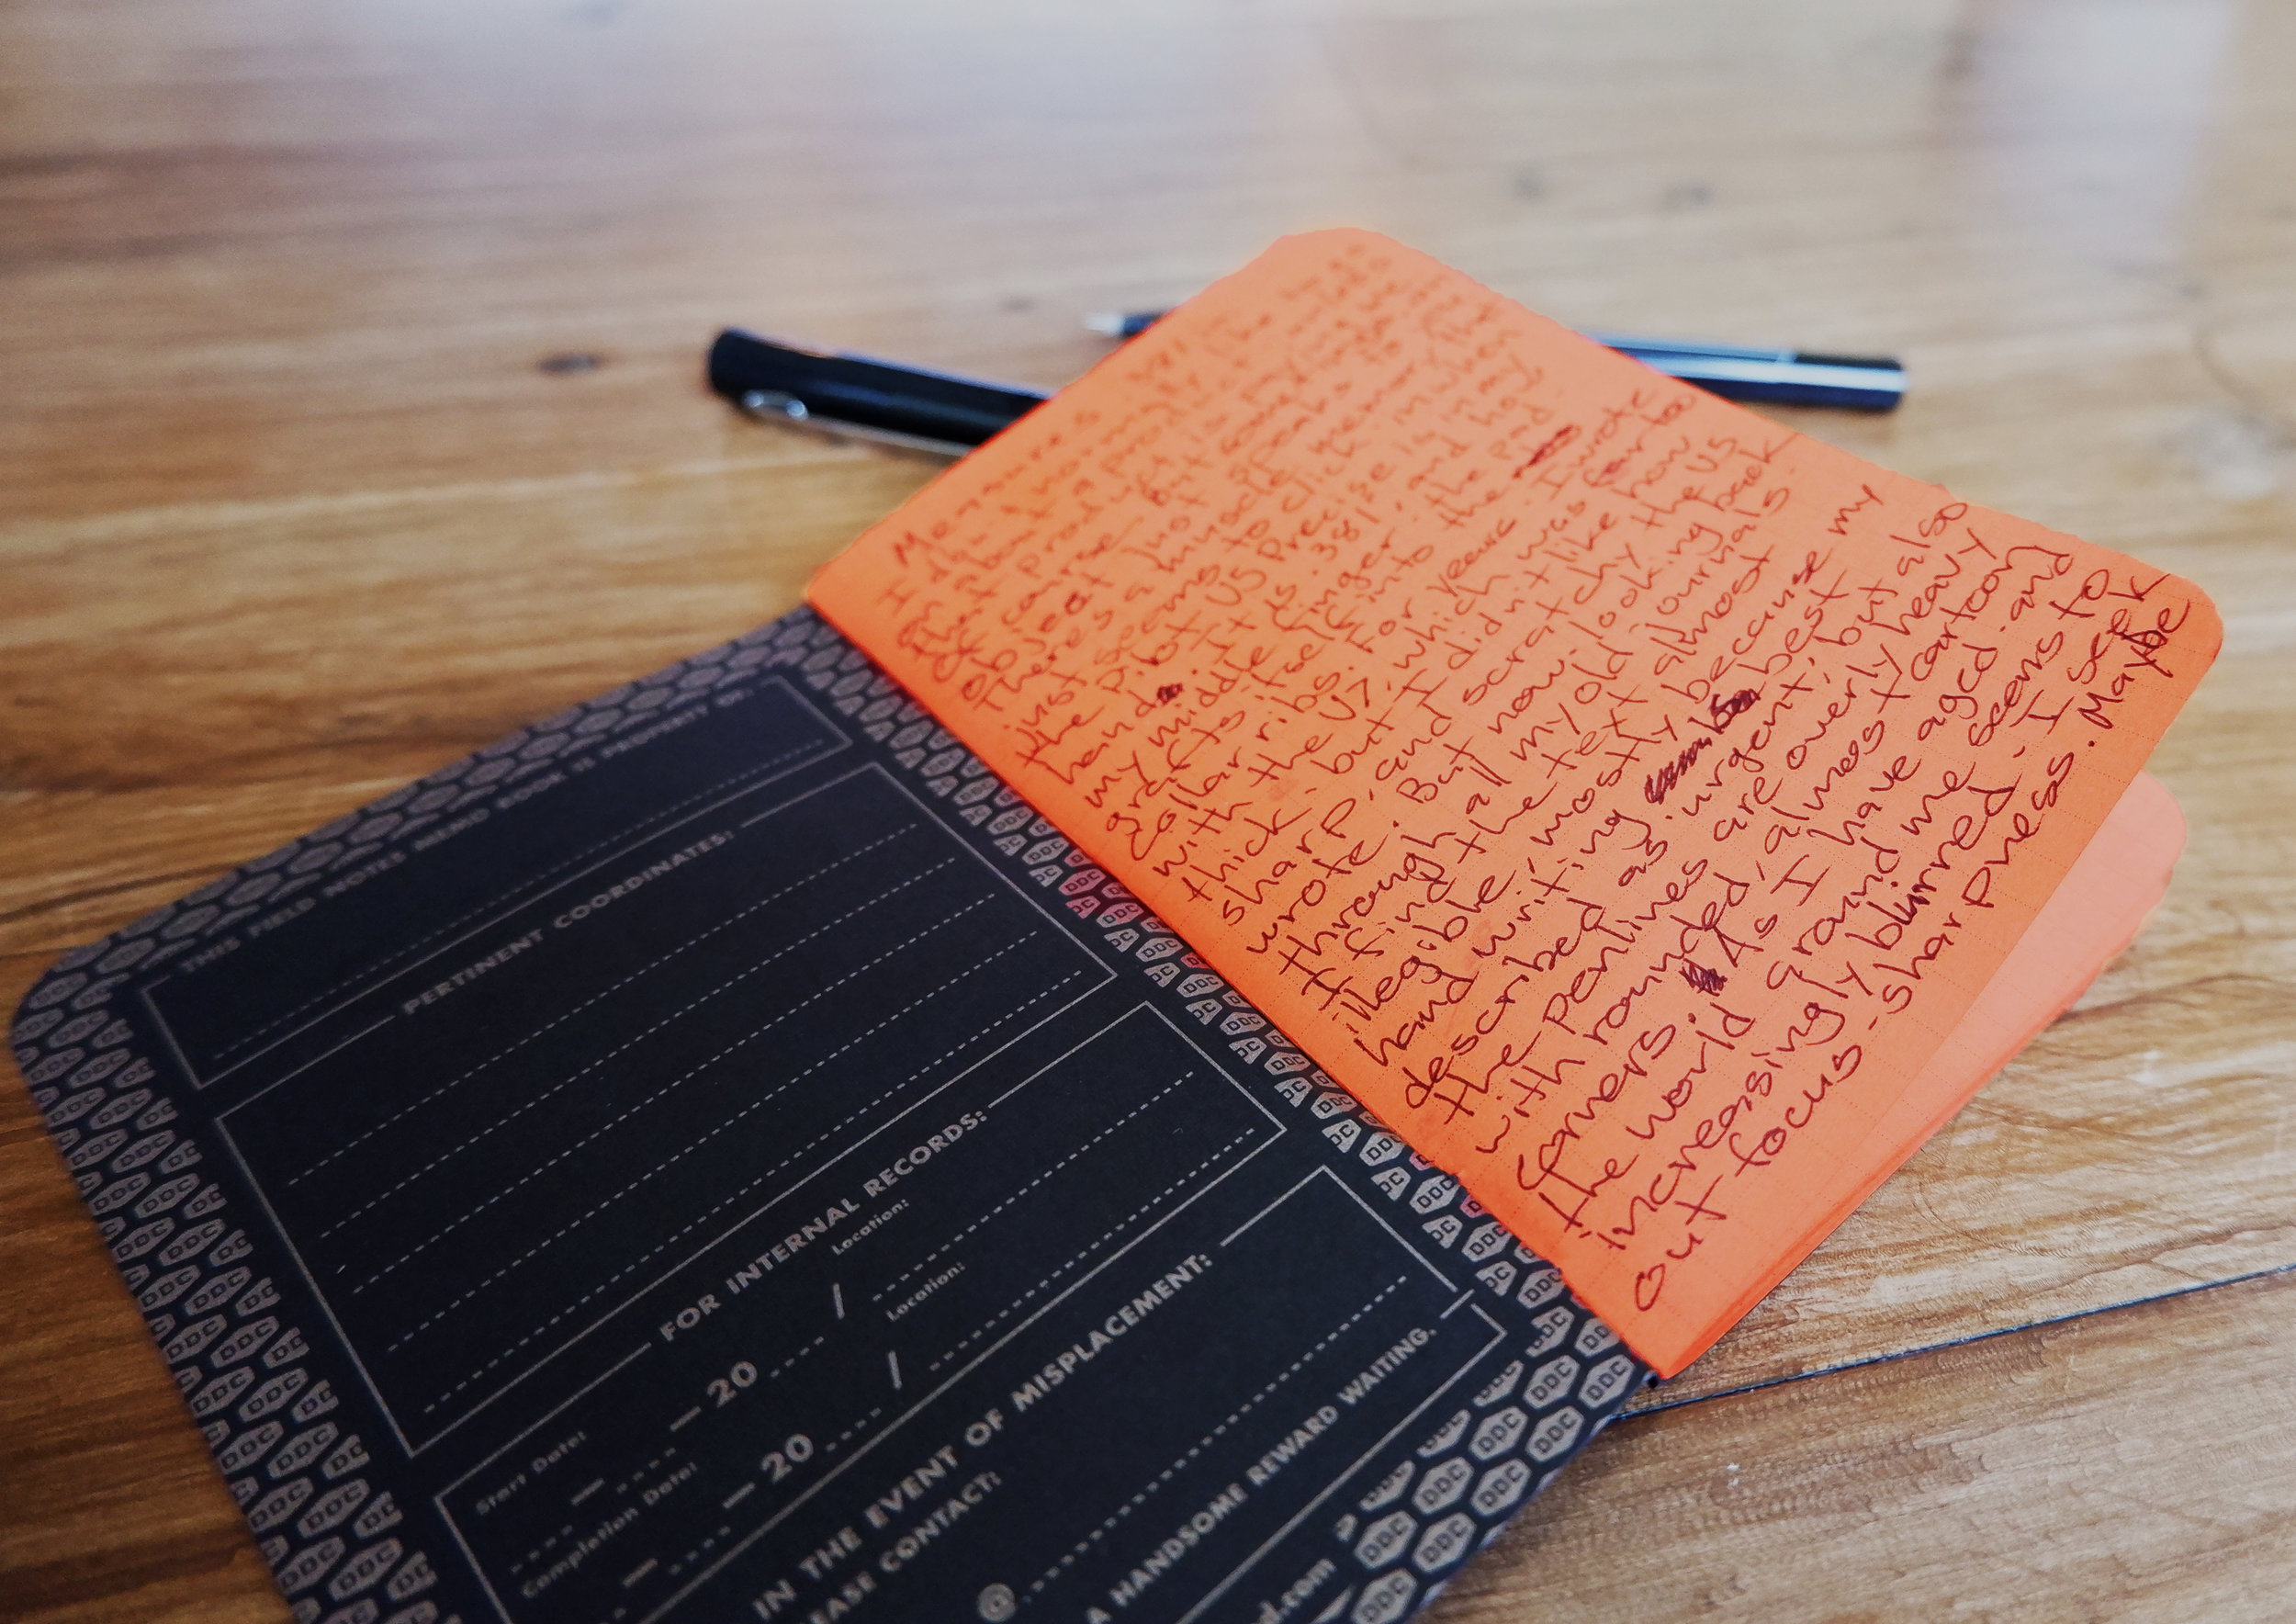 The Pilot V5 Precise and Field notes - Nathaniel Barber Blog